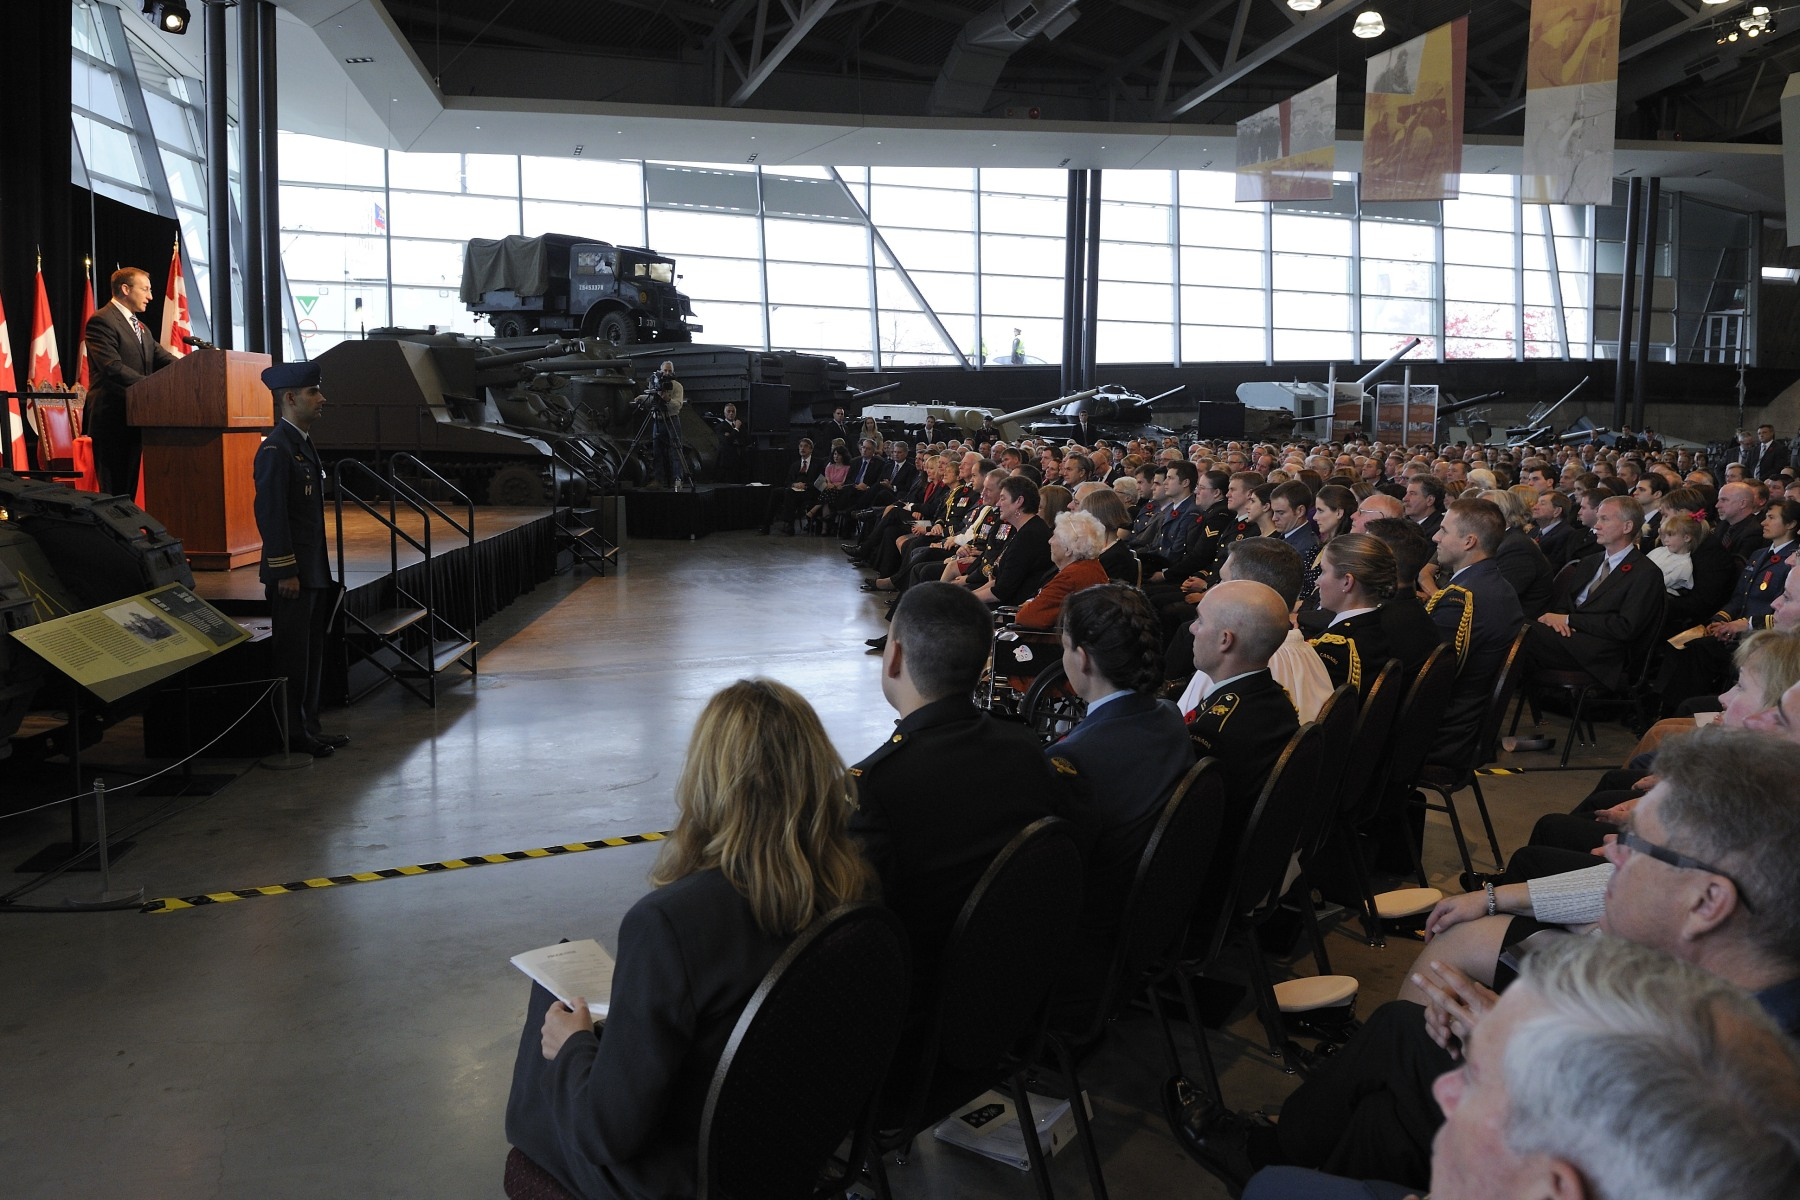 Canadian Forces personnel and their family members as well as distinguised guests attended the ceremony.